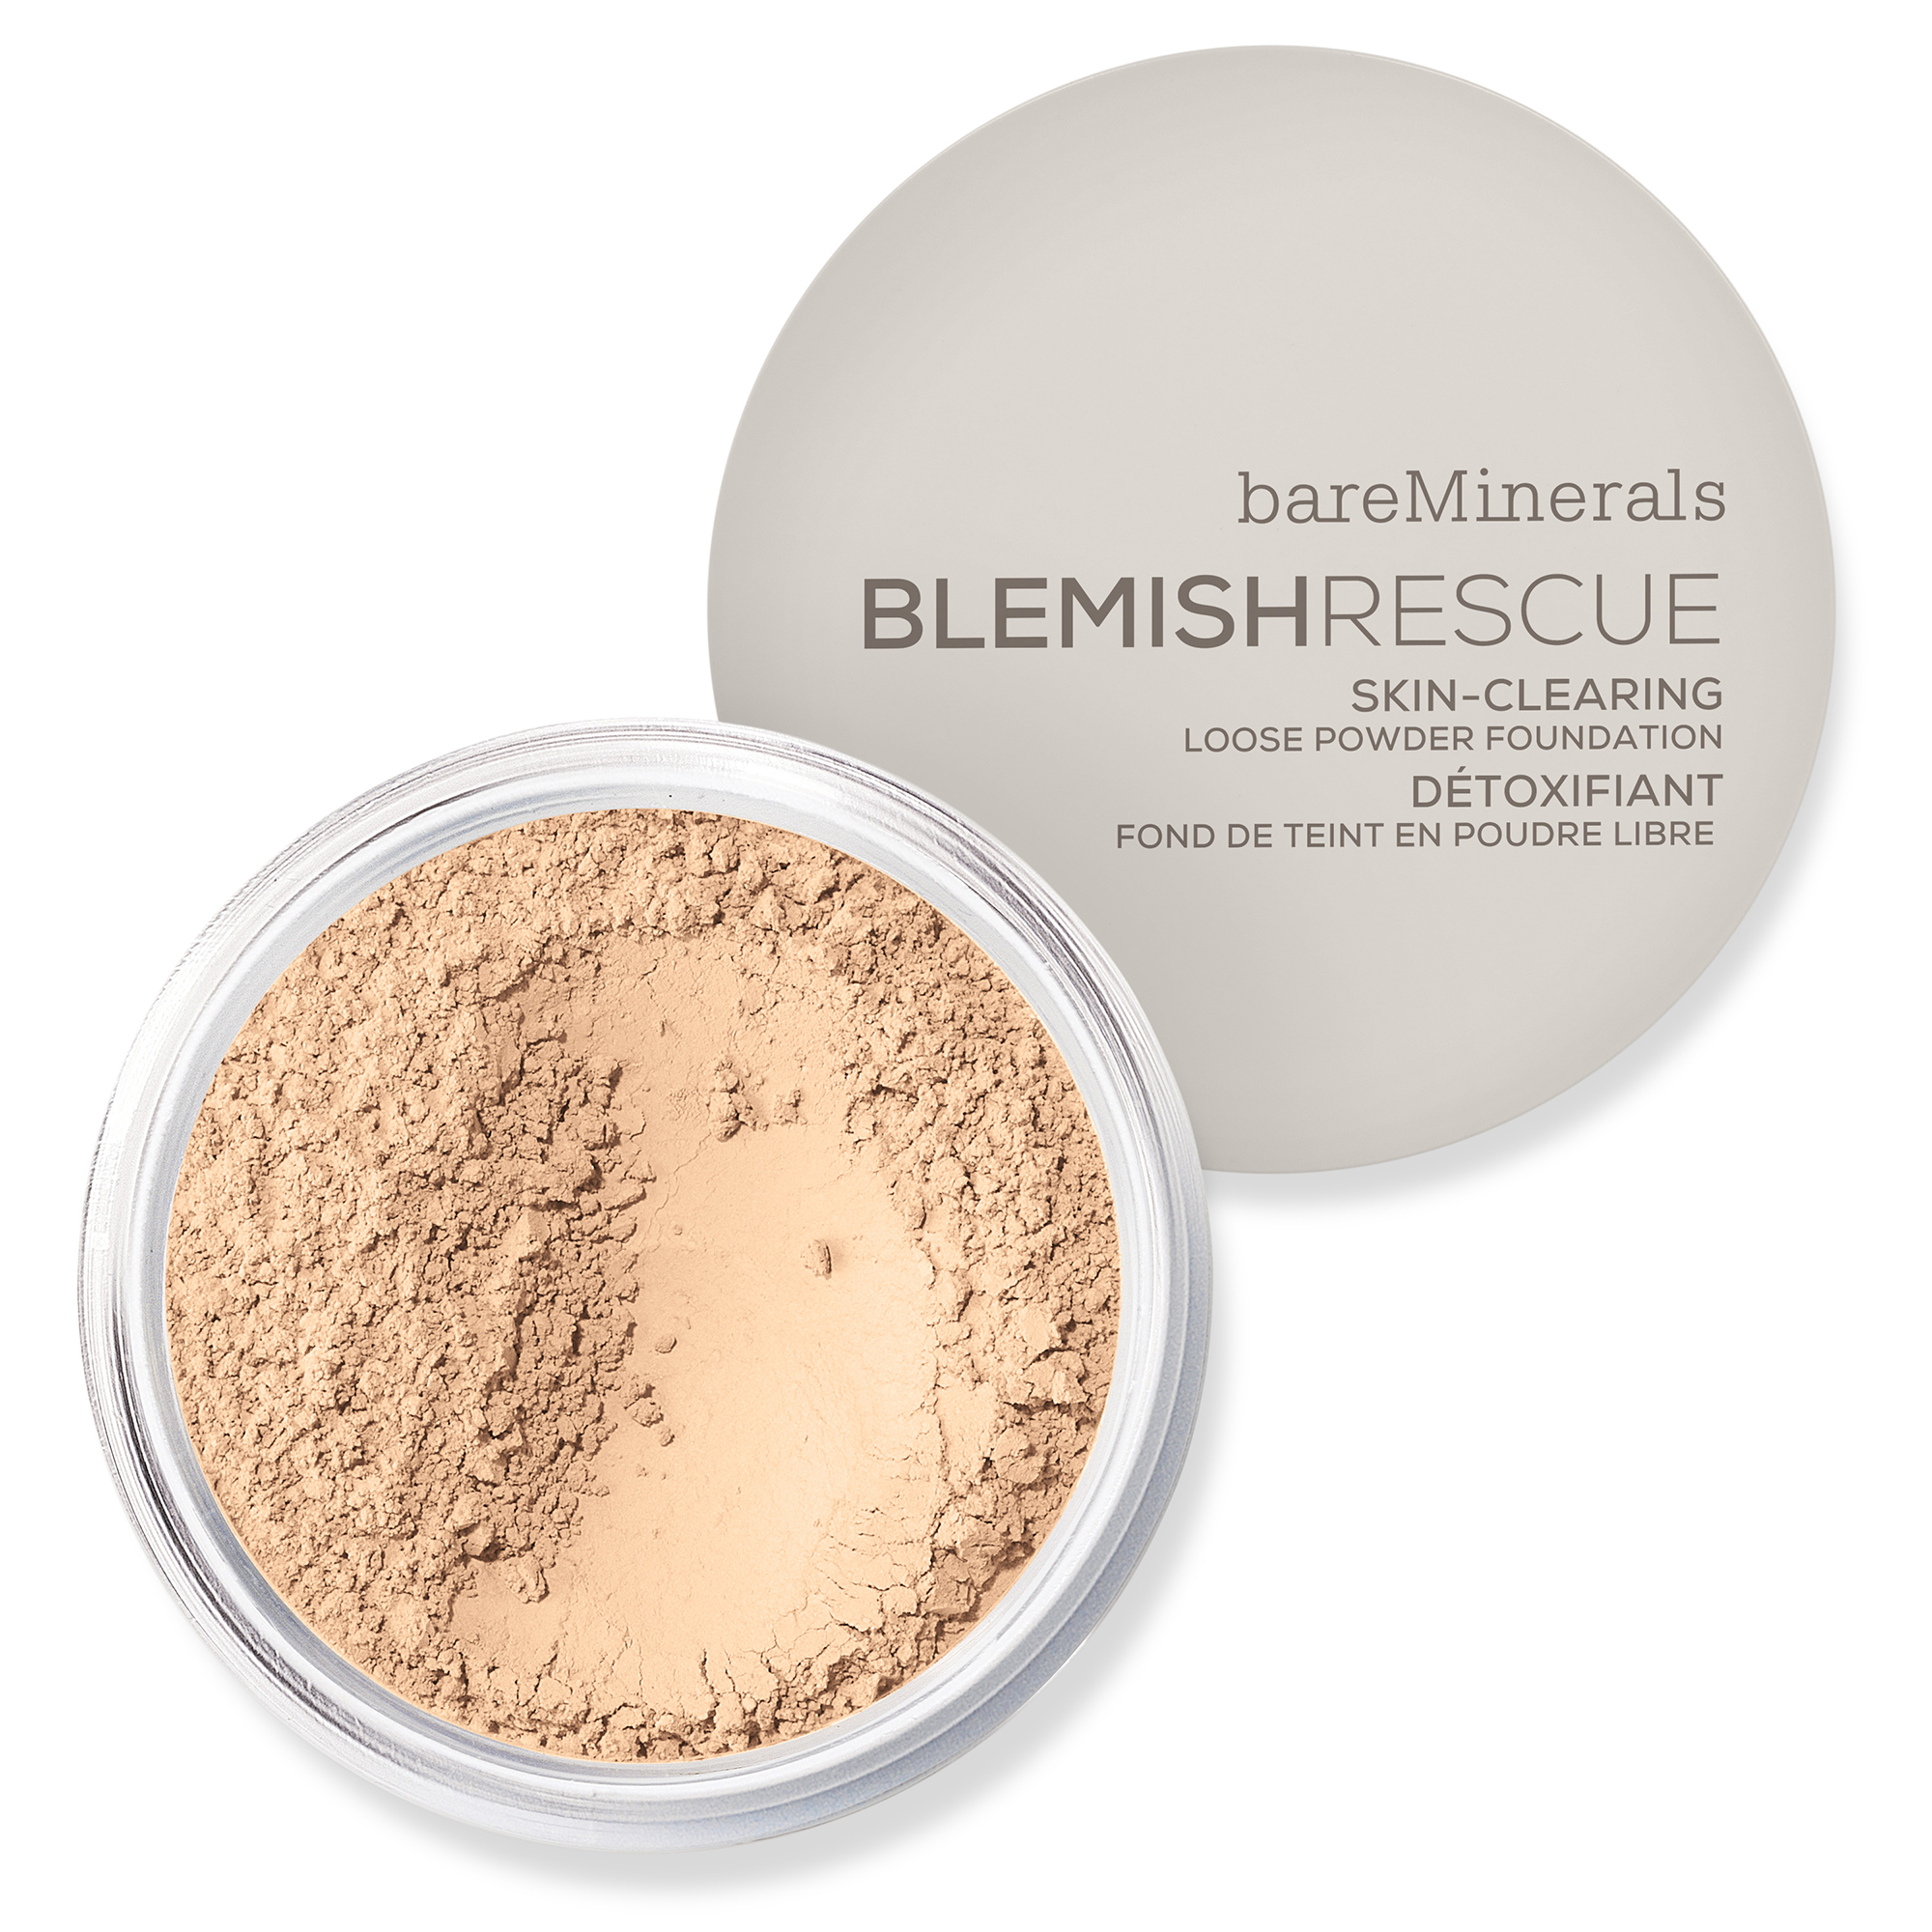 bareMinerals Blemish Rescue Loose Powder Foundation, 1nw fairly light